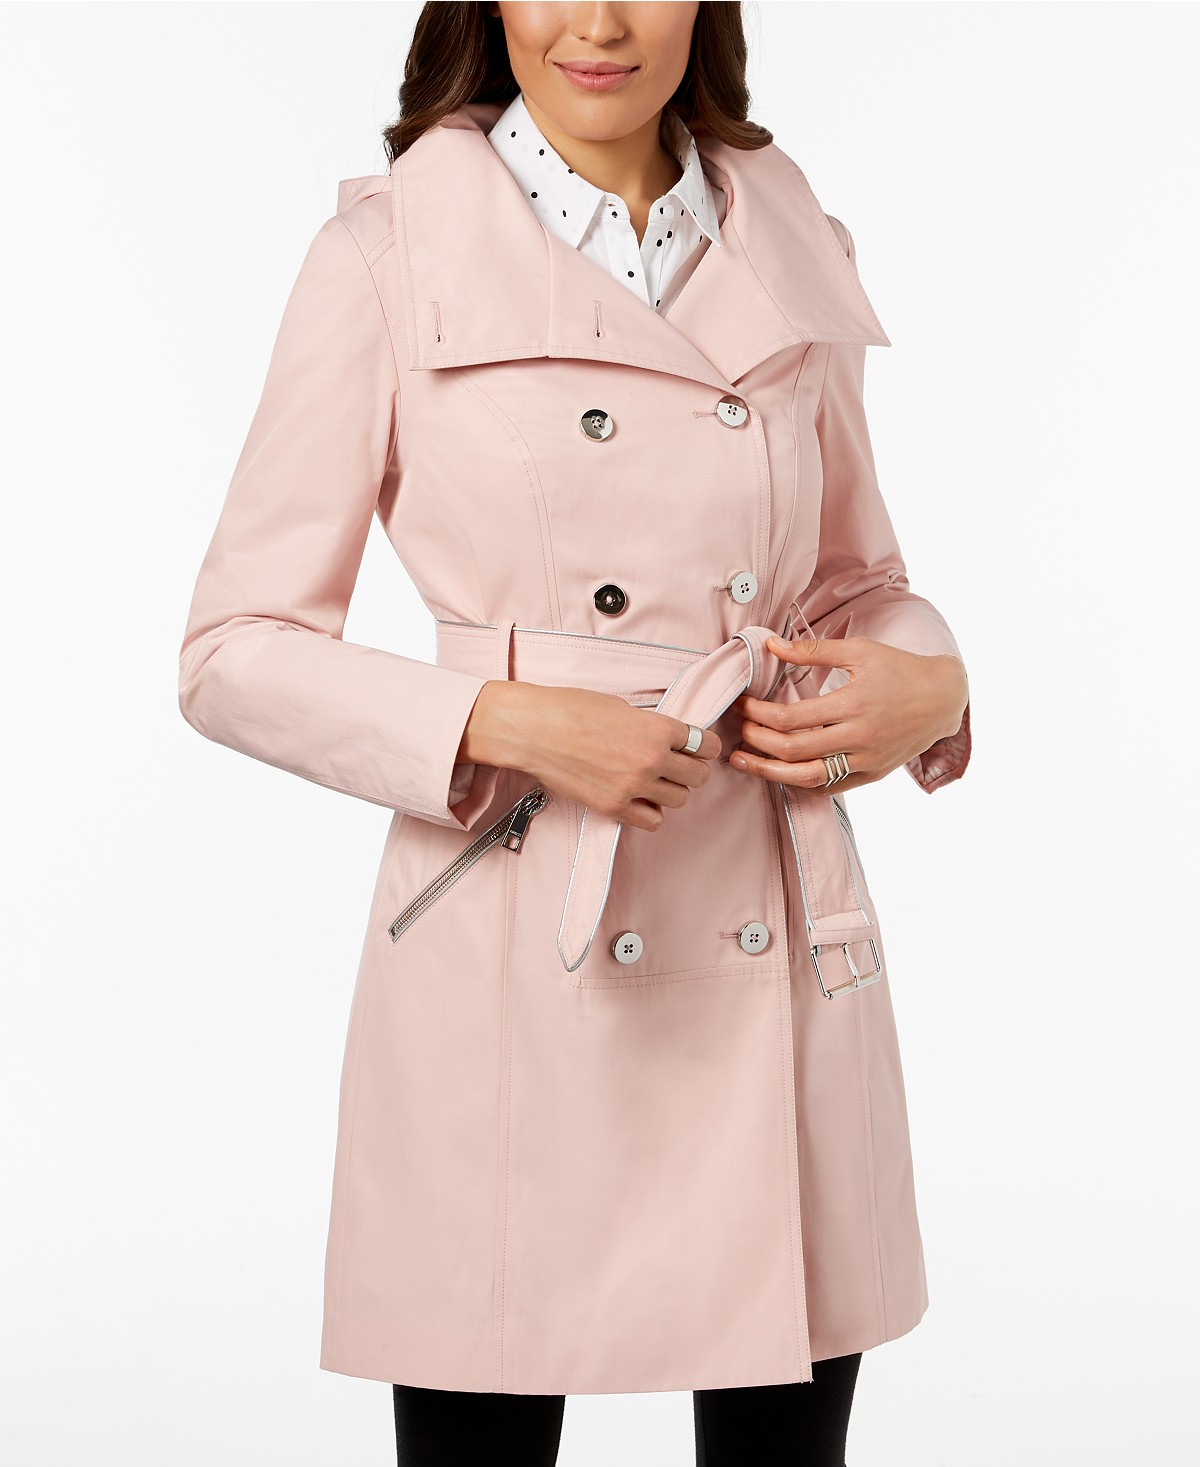 Guess Hooded Belted Double-Breasted Trench Coat